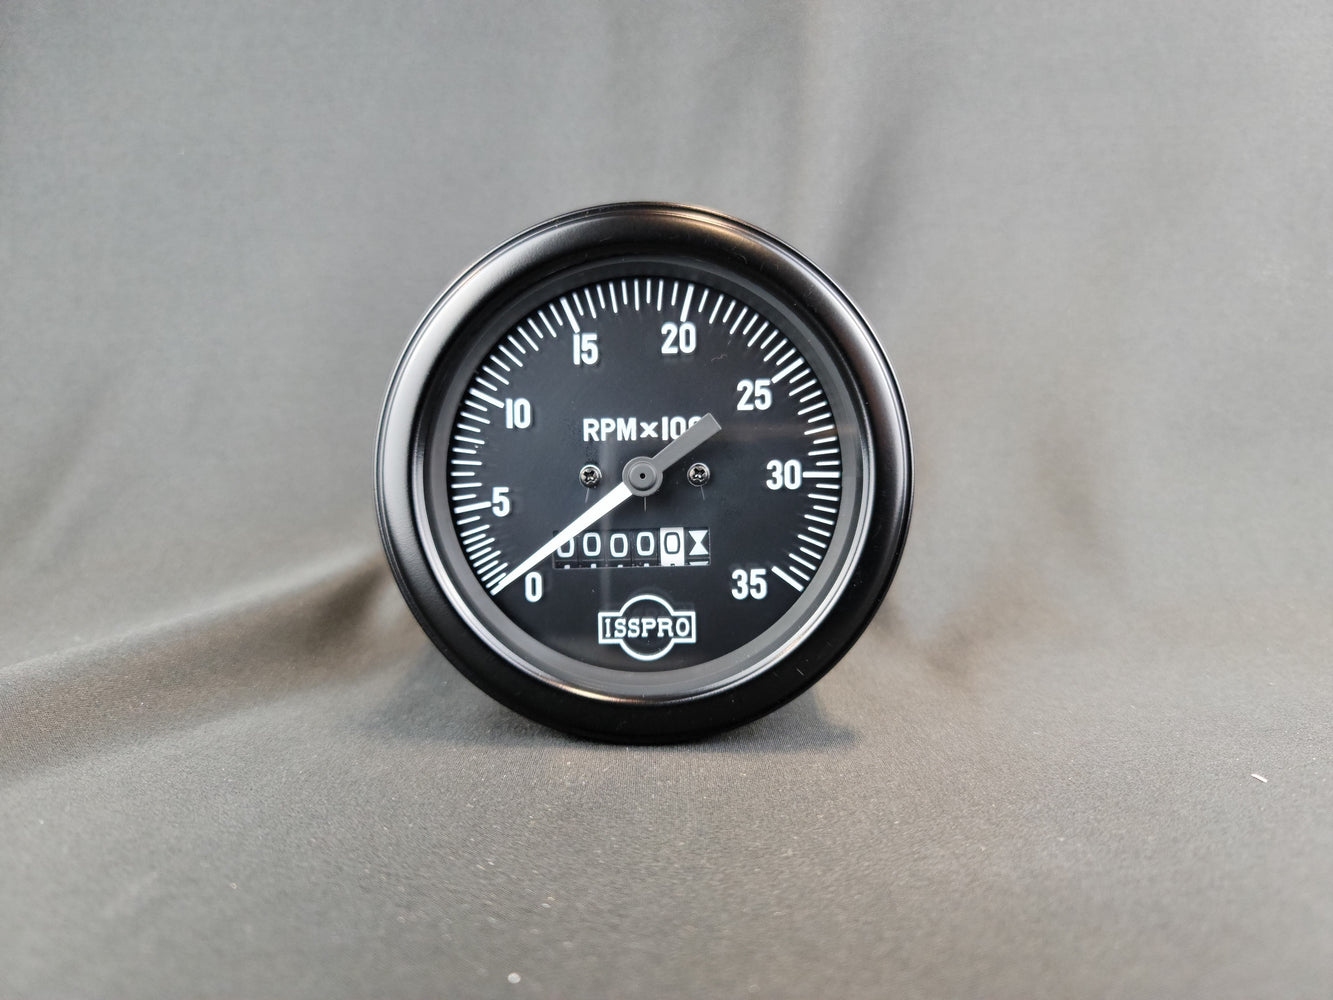 ISSPRO 3 3/8 Inch Mechanical Tachometer - 0.5:1 Ratio - R8599